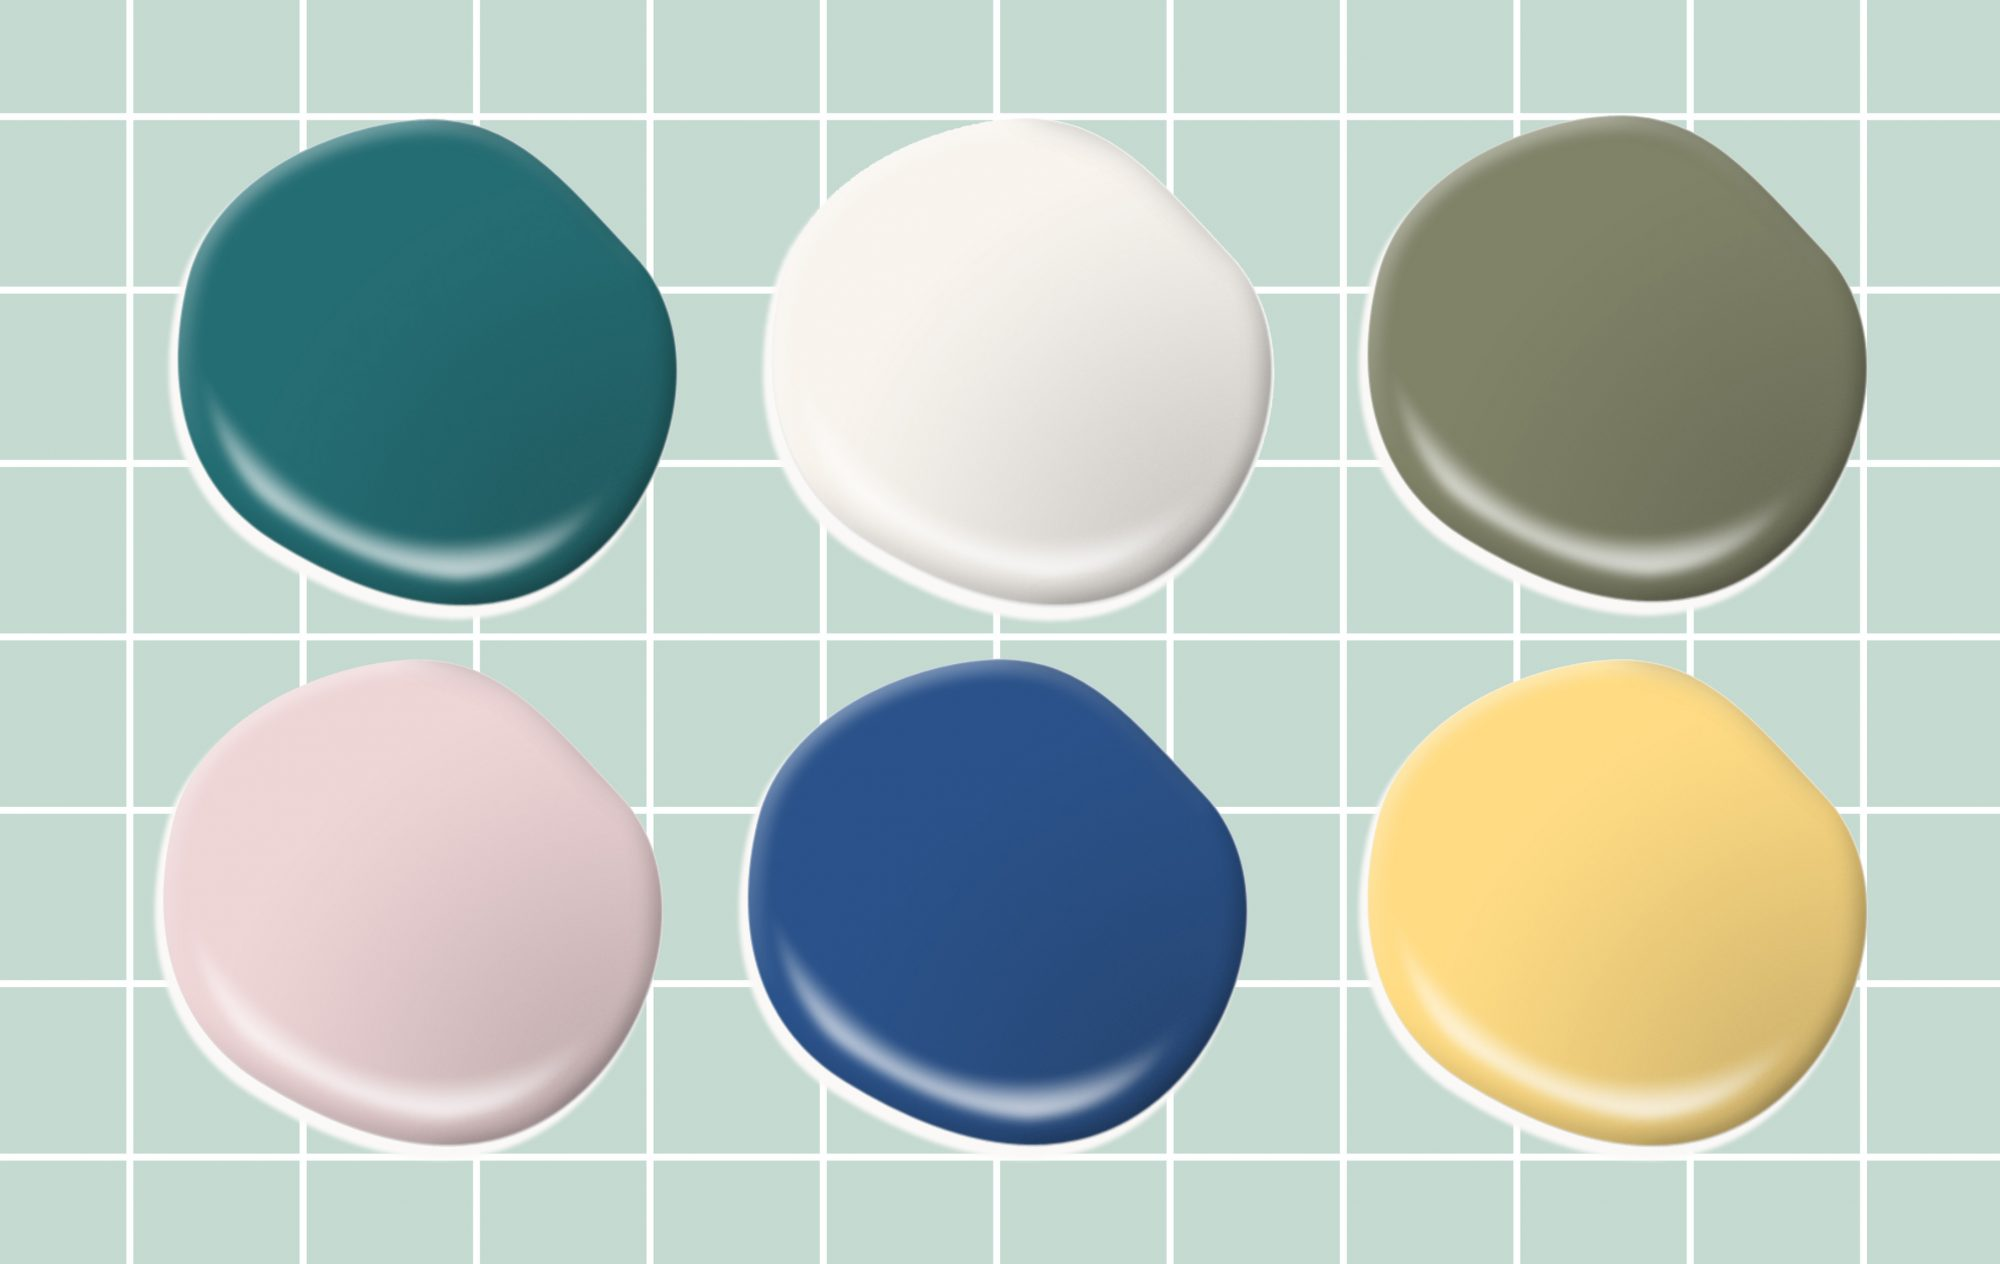 Try These Mood Boosting Paint Colors Instead